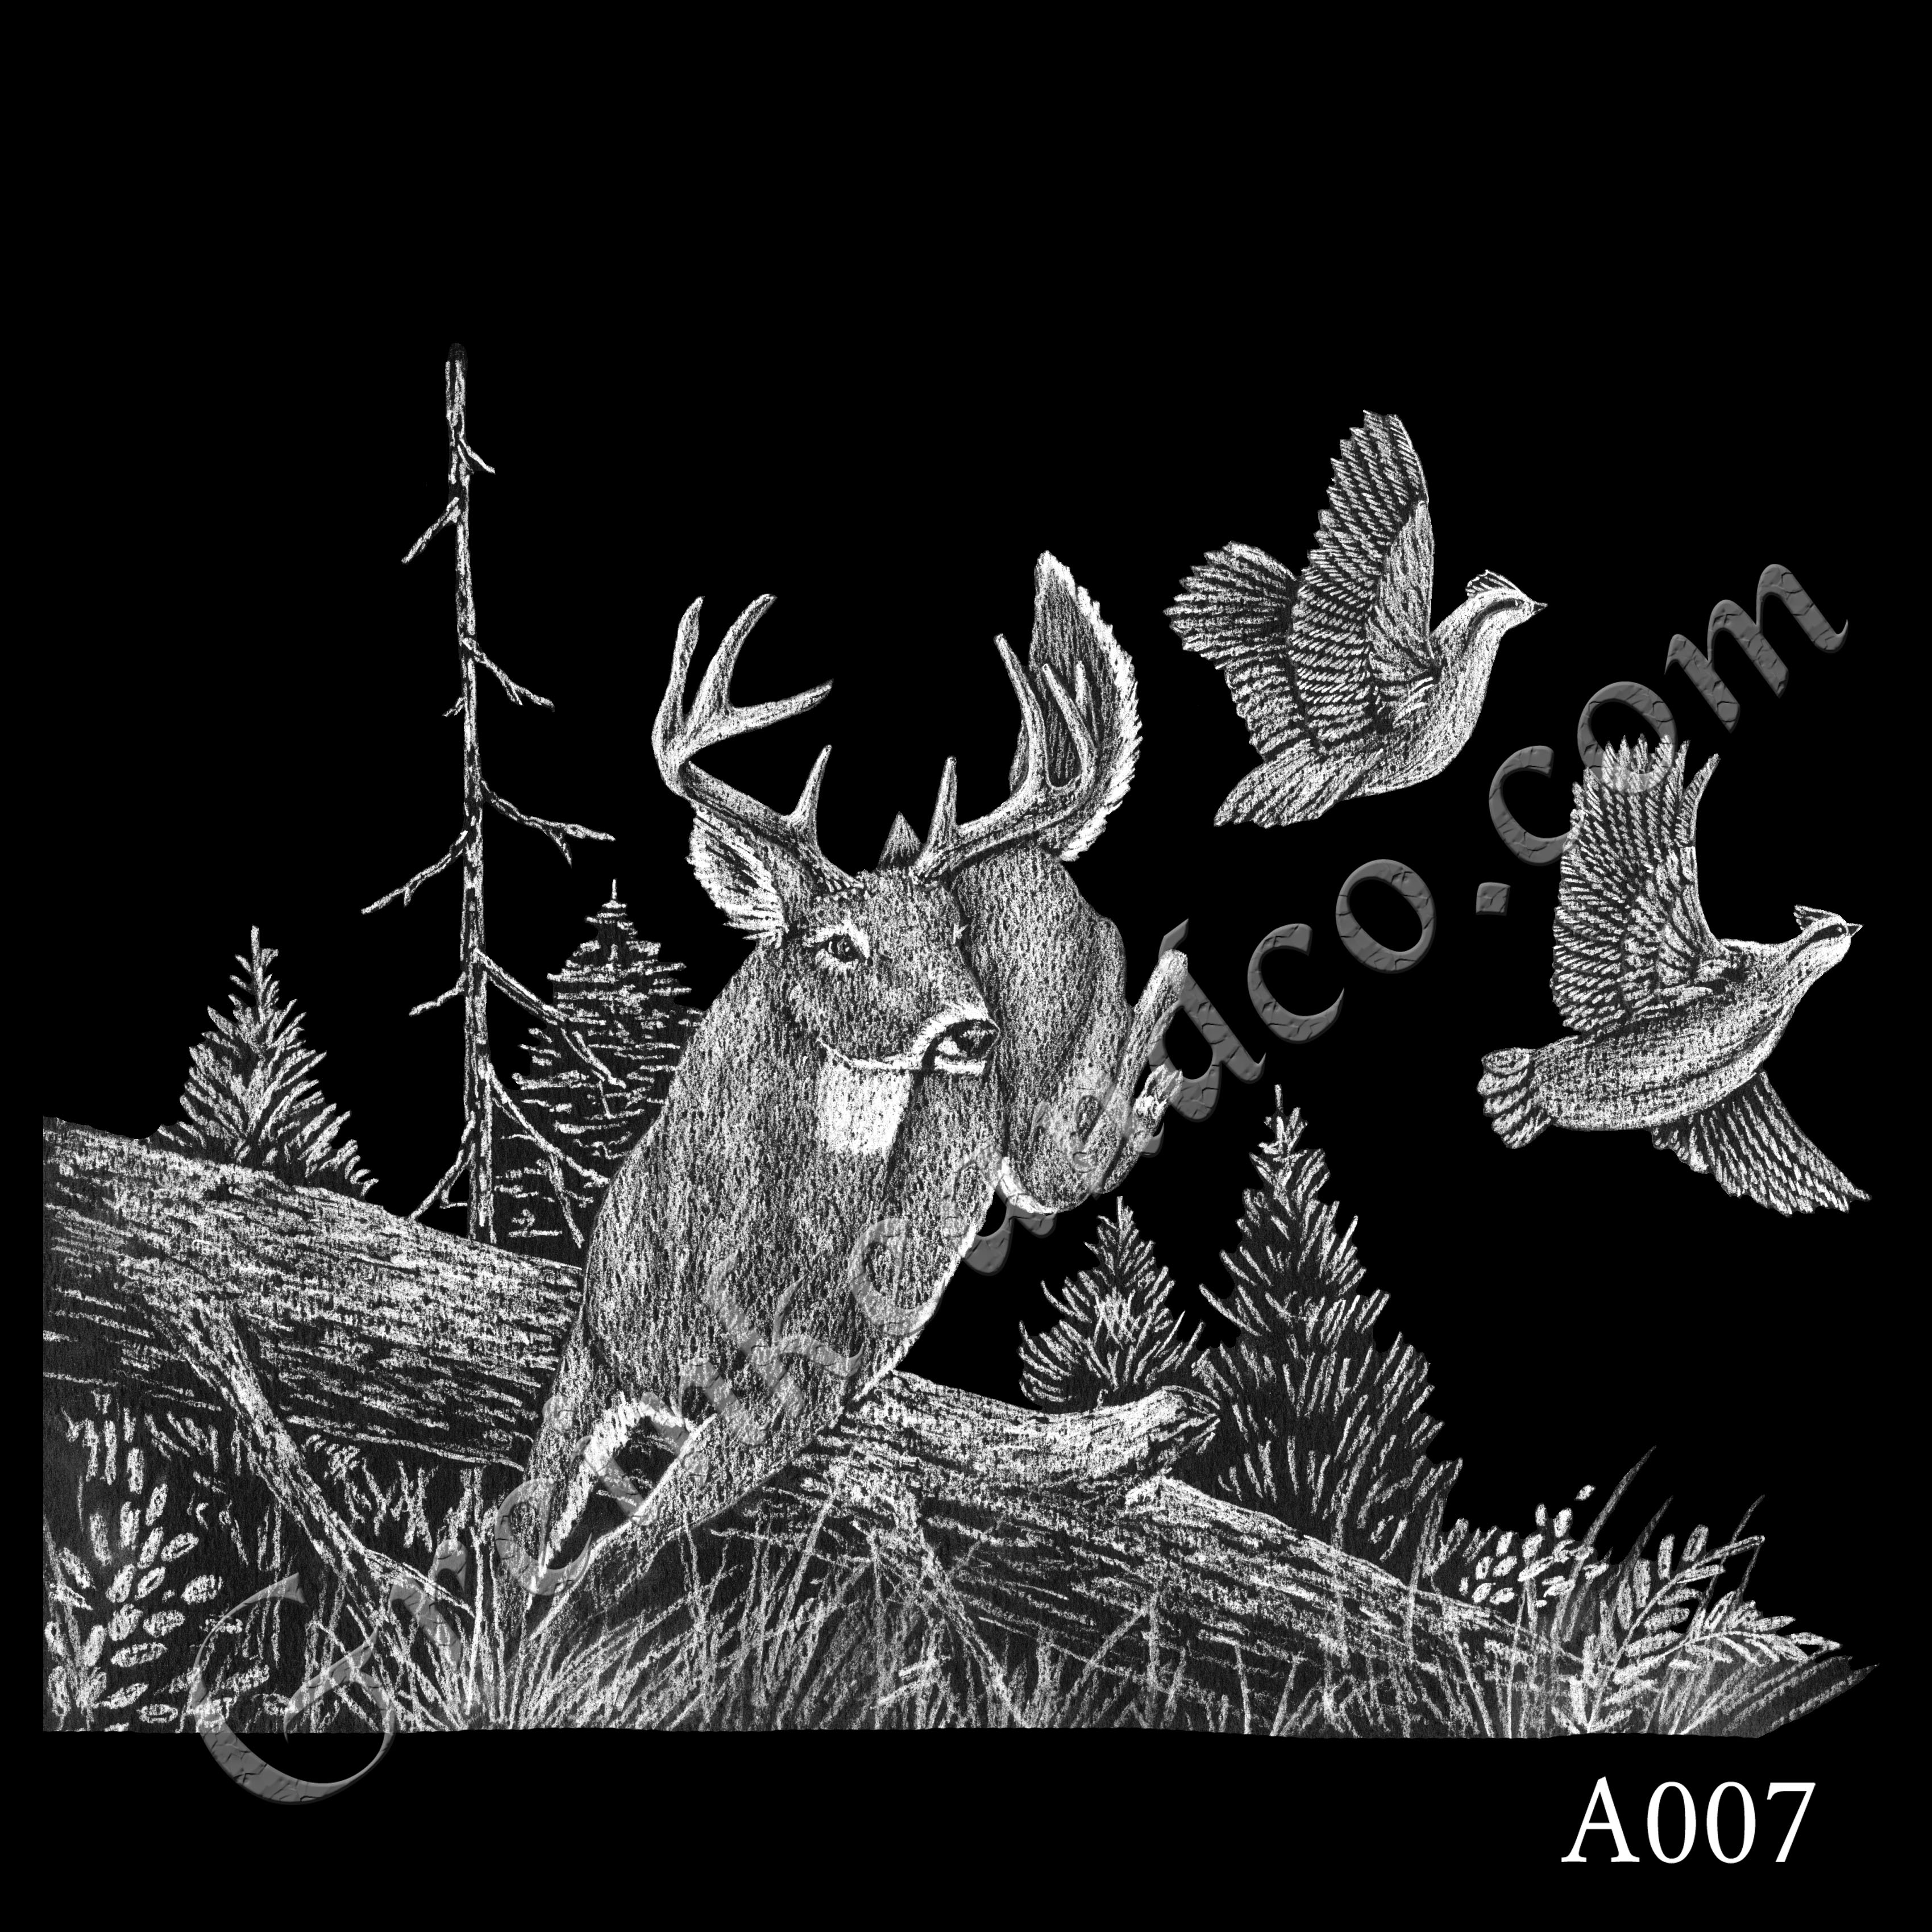 A007 - Jumping Buck and Birds